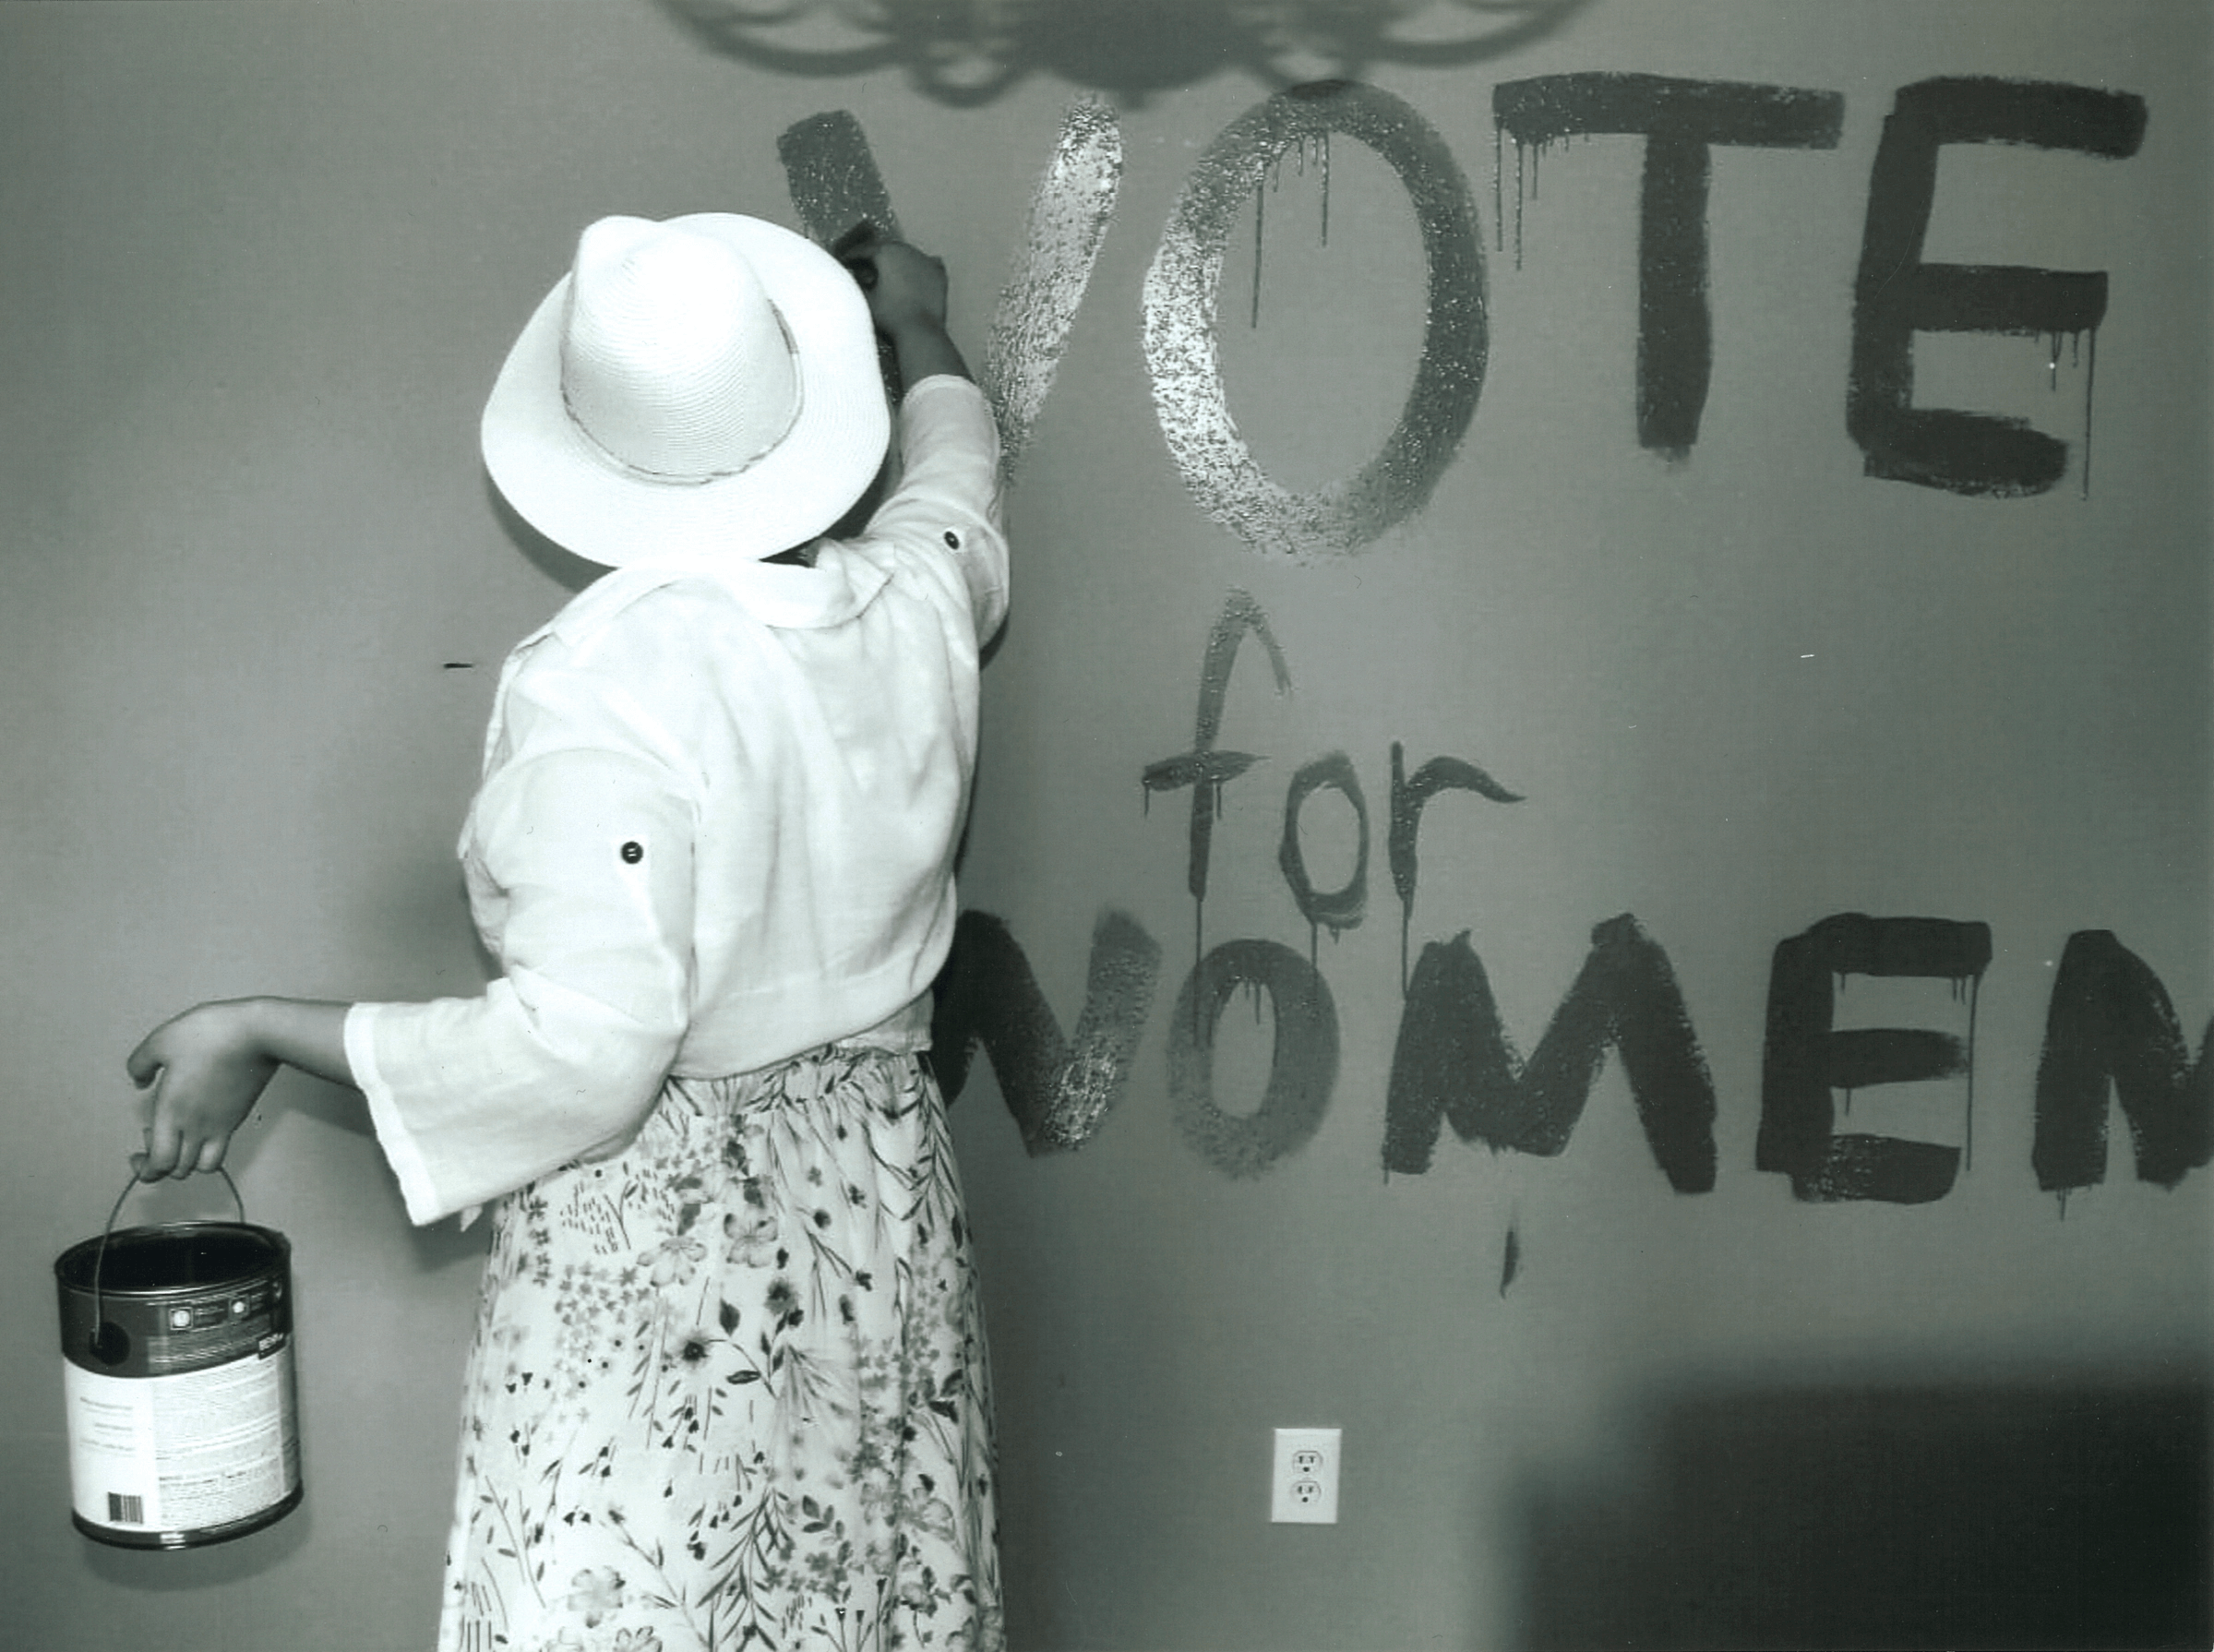 View of a woman from the back as she paints vote for women on a wall